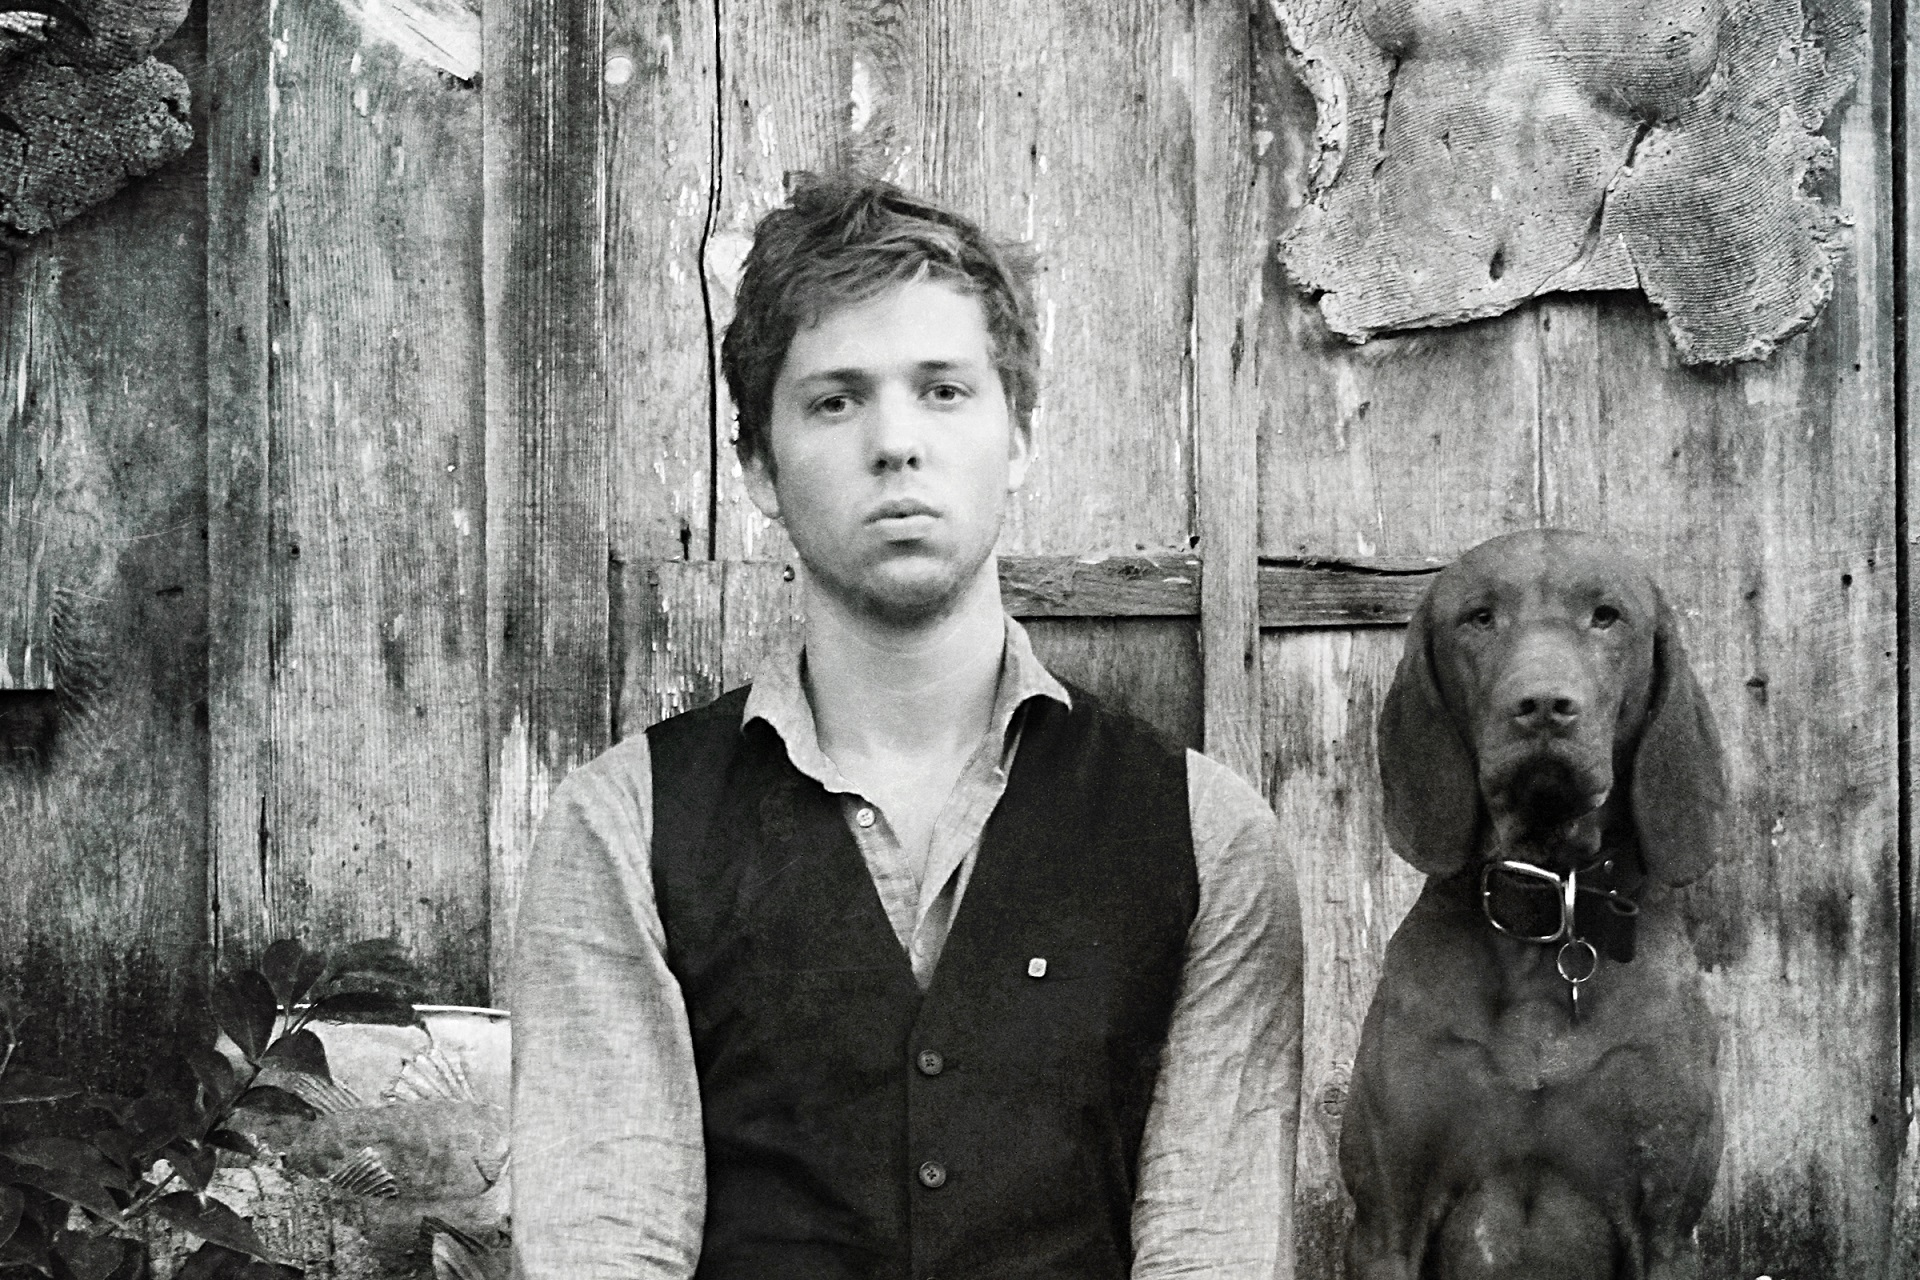 William Ryan Fritch, artist sat in front of wooden wall with his dog